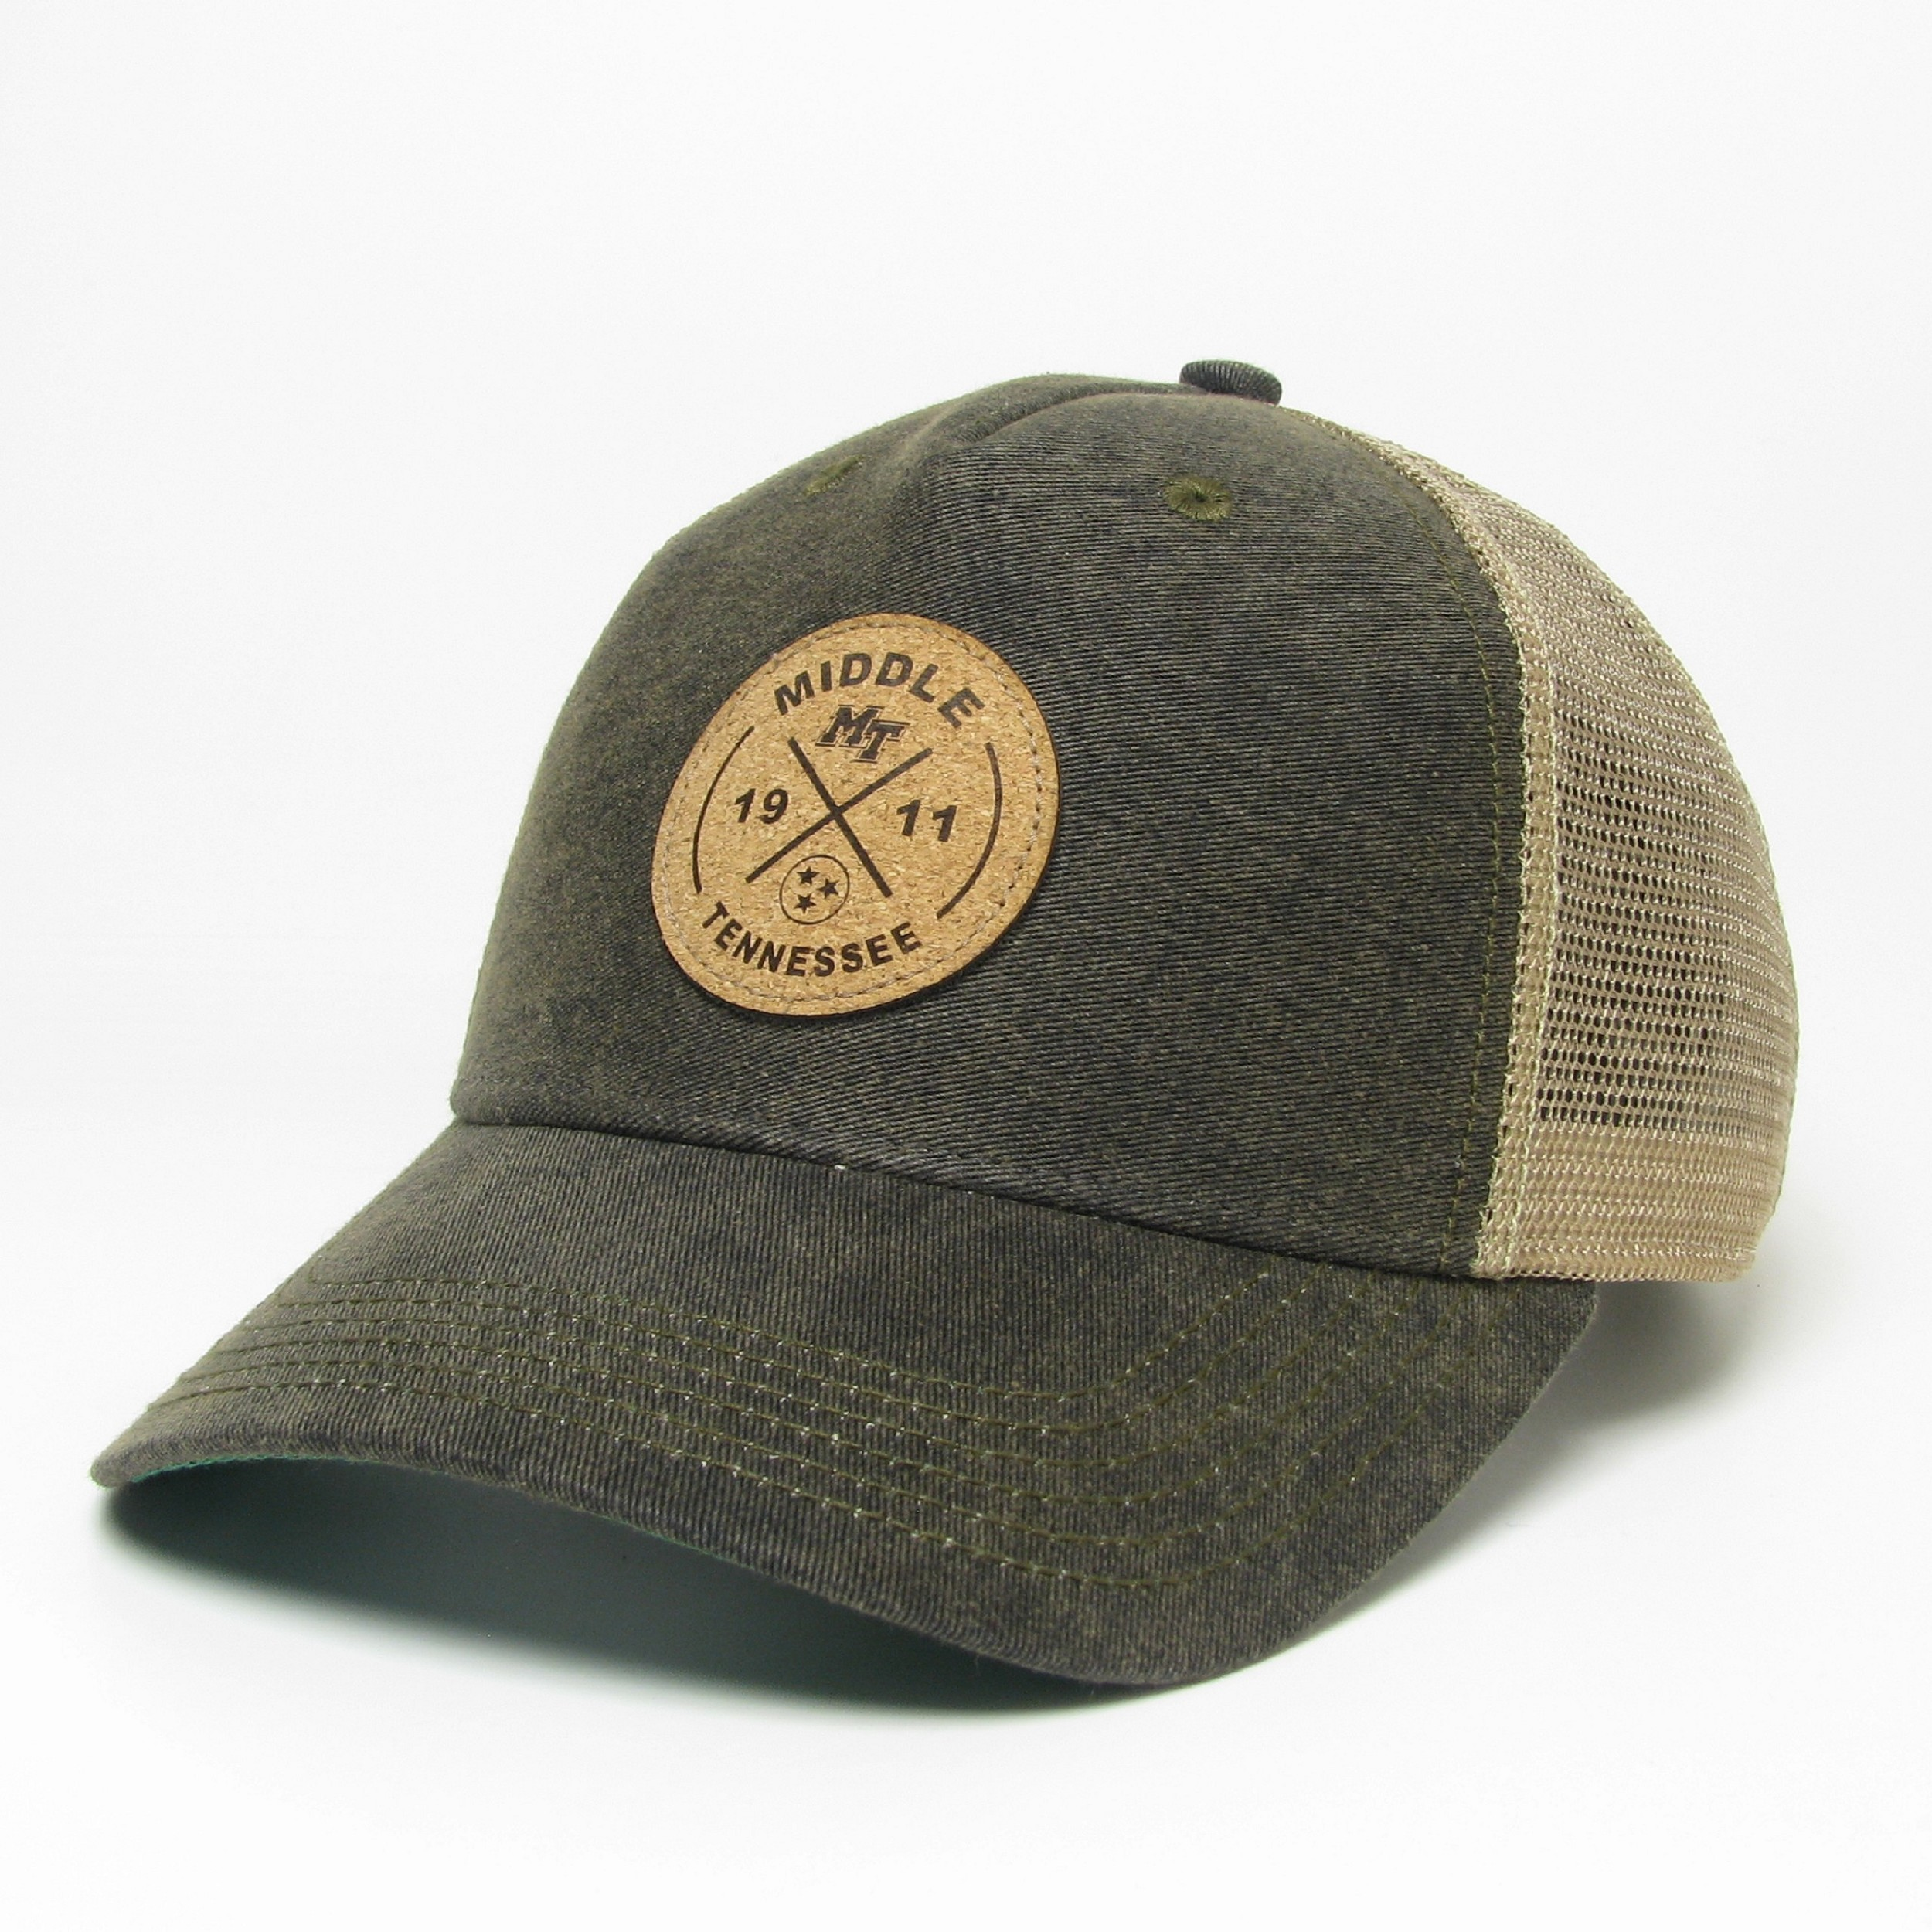 MTSU Circle X Old Favorite Structured Trucker Hat